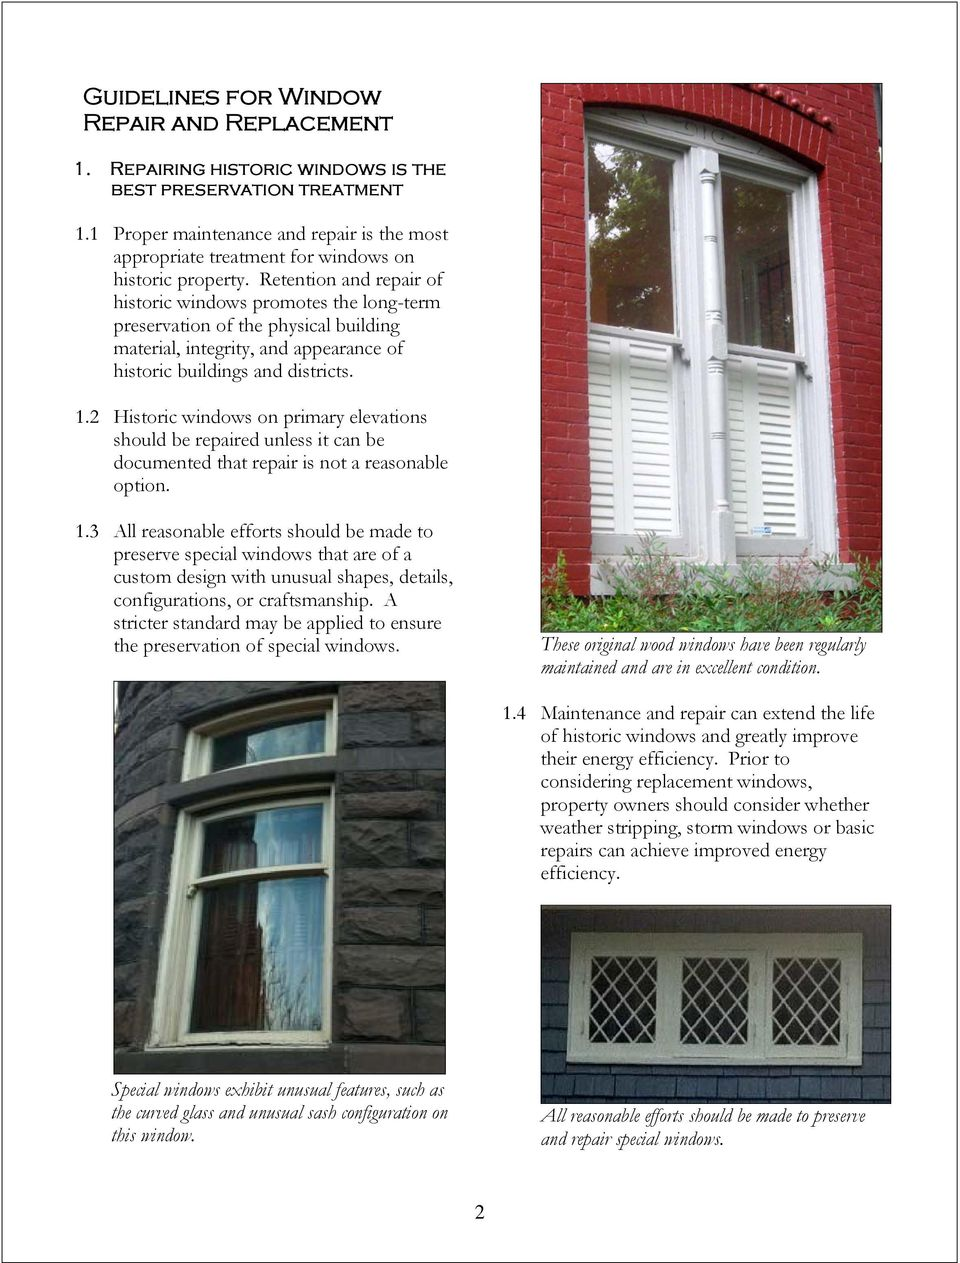 Retention and repair of historic windows promotes the long-term preservation of the physical building material, integrity, and appearance of historic buildings and districts. 1.